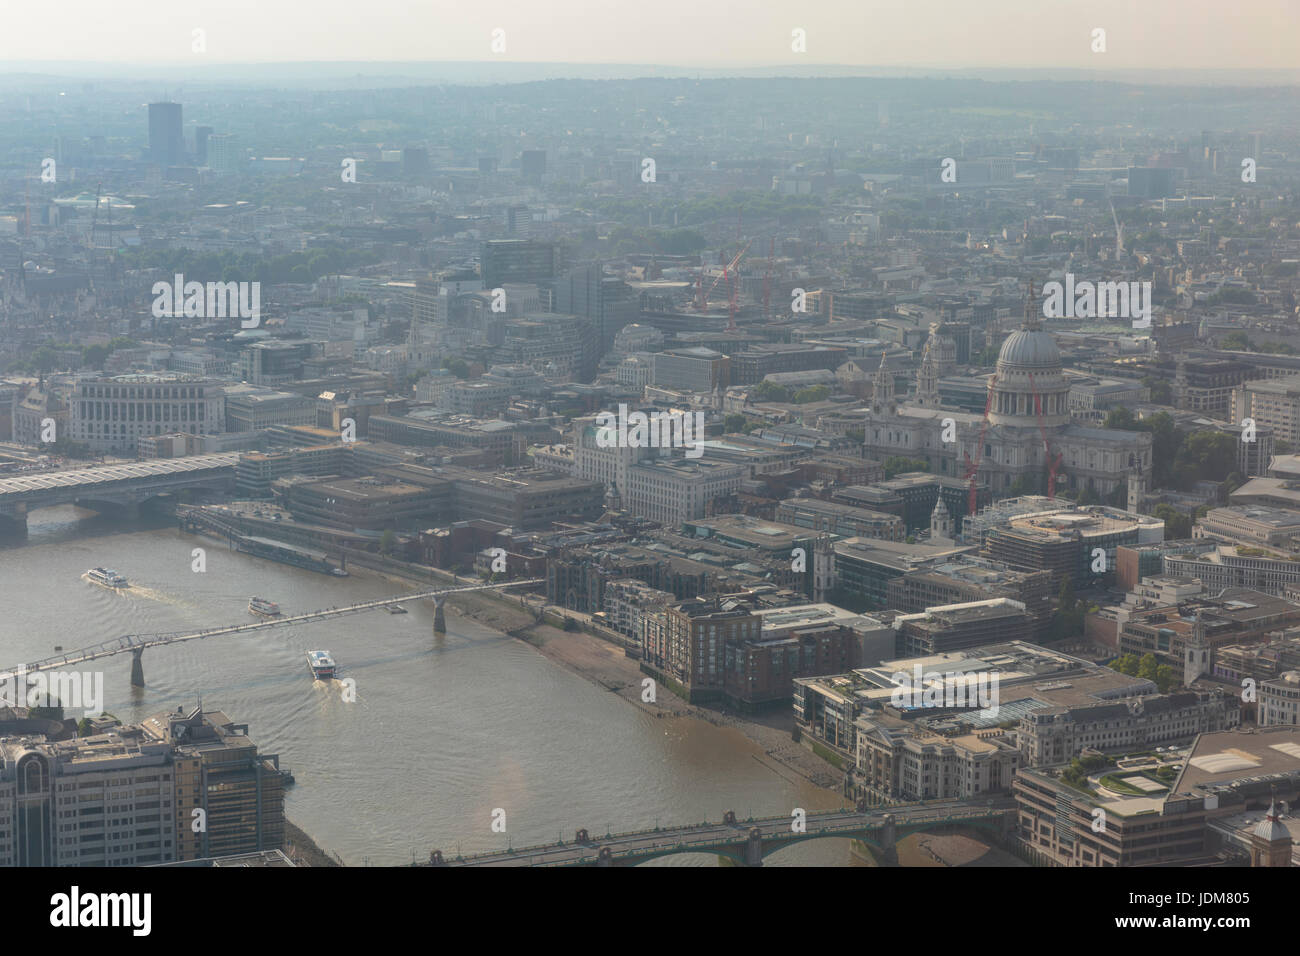 London, UK. 21st June, 2017. Heavy pollution over St Paul's Cathedral. The Mayor of London, Sadiq Khan, has - Stock Image